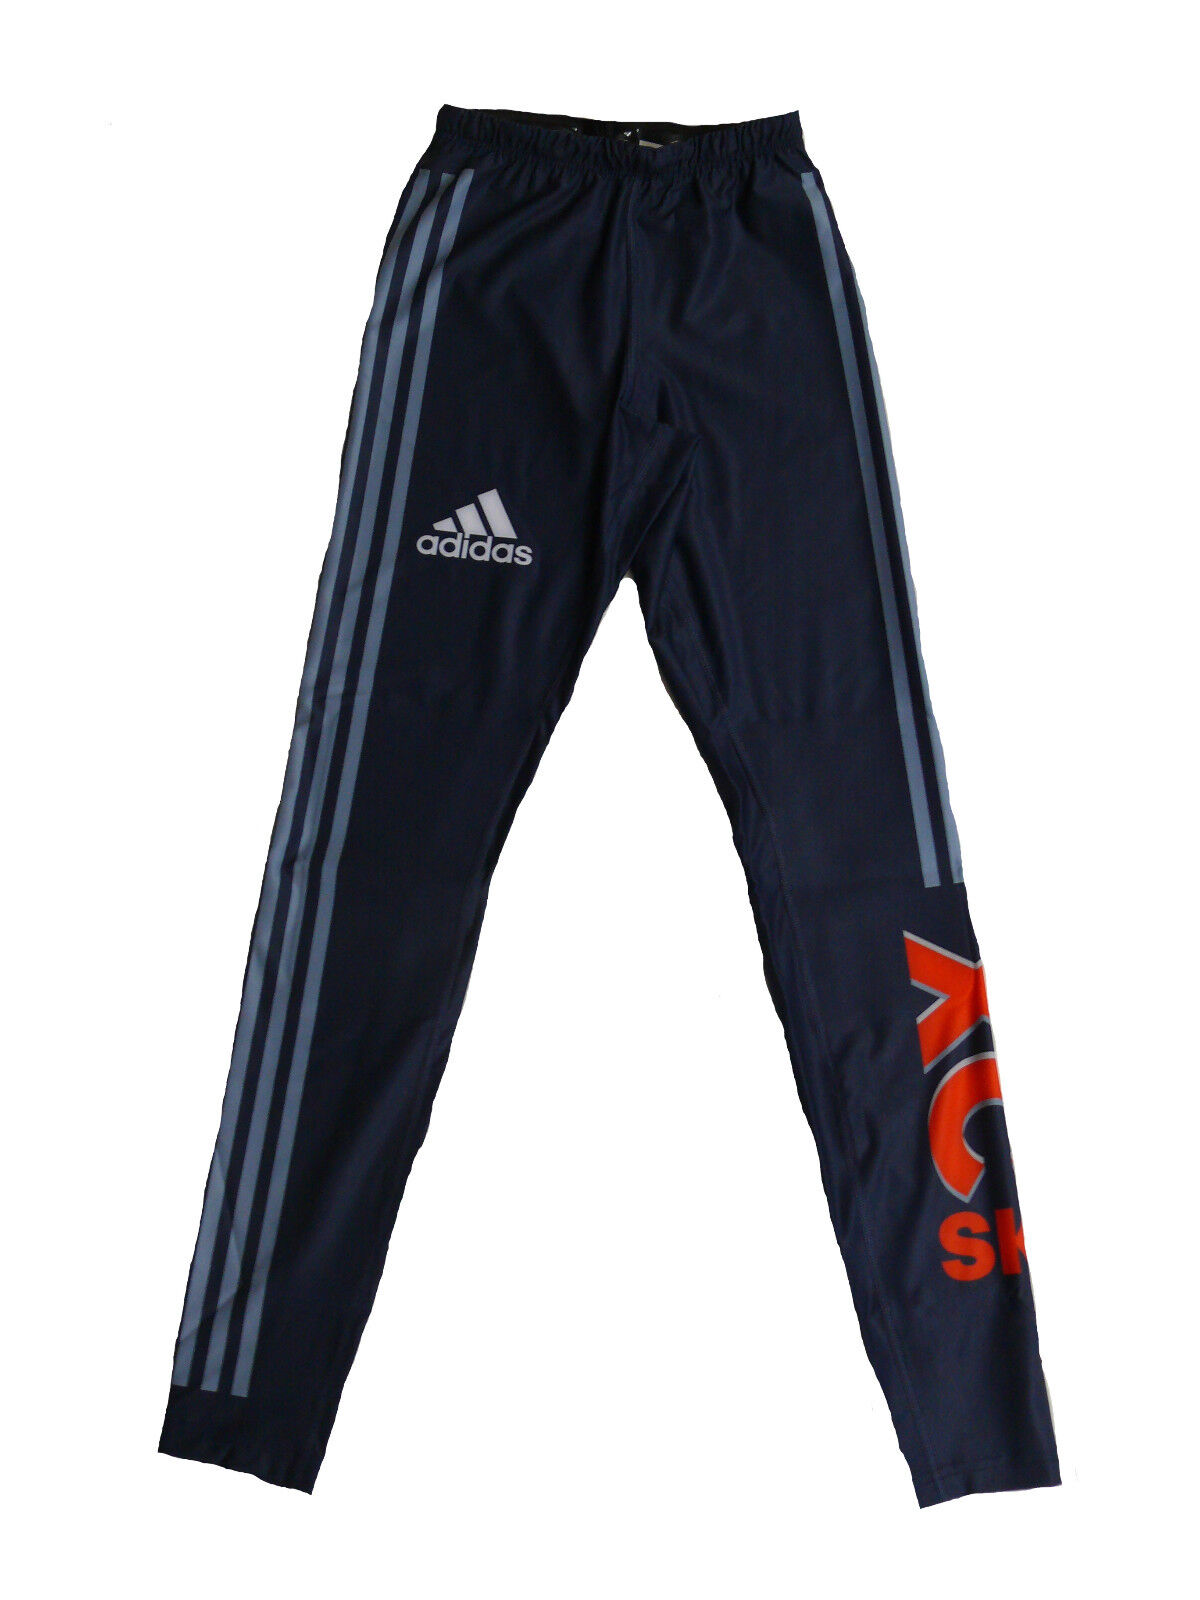 Adidas Mens Race Cross-Country Skiing Tights Trousers Gr.4 (S)